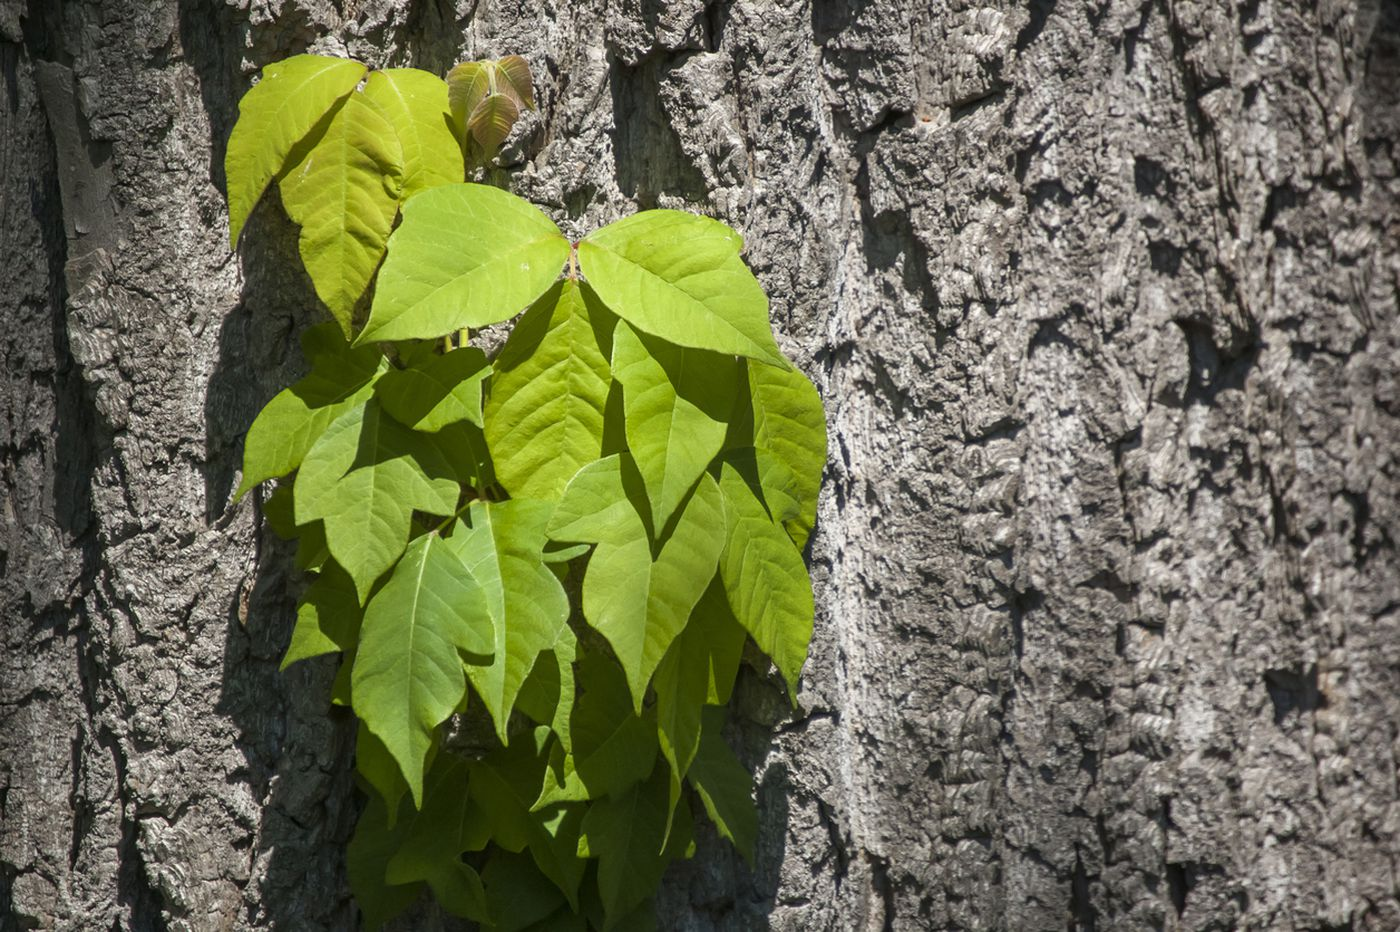 Q&A: How do I know if I have poison ivy?